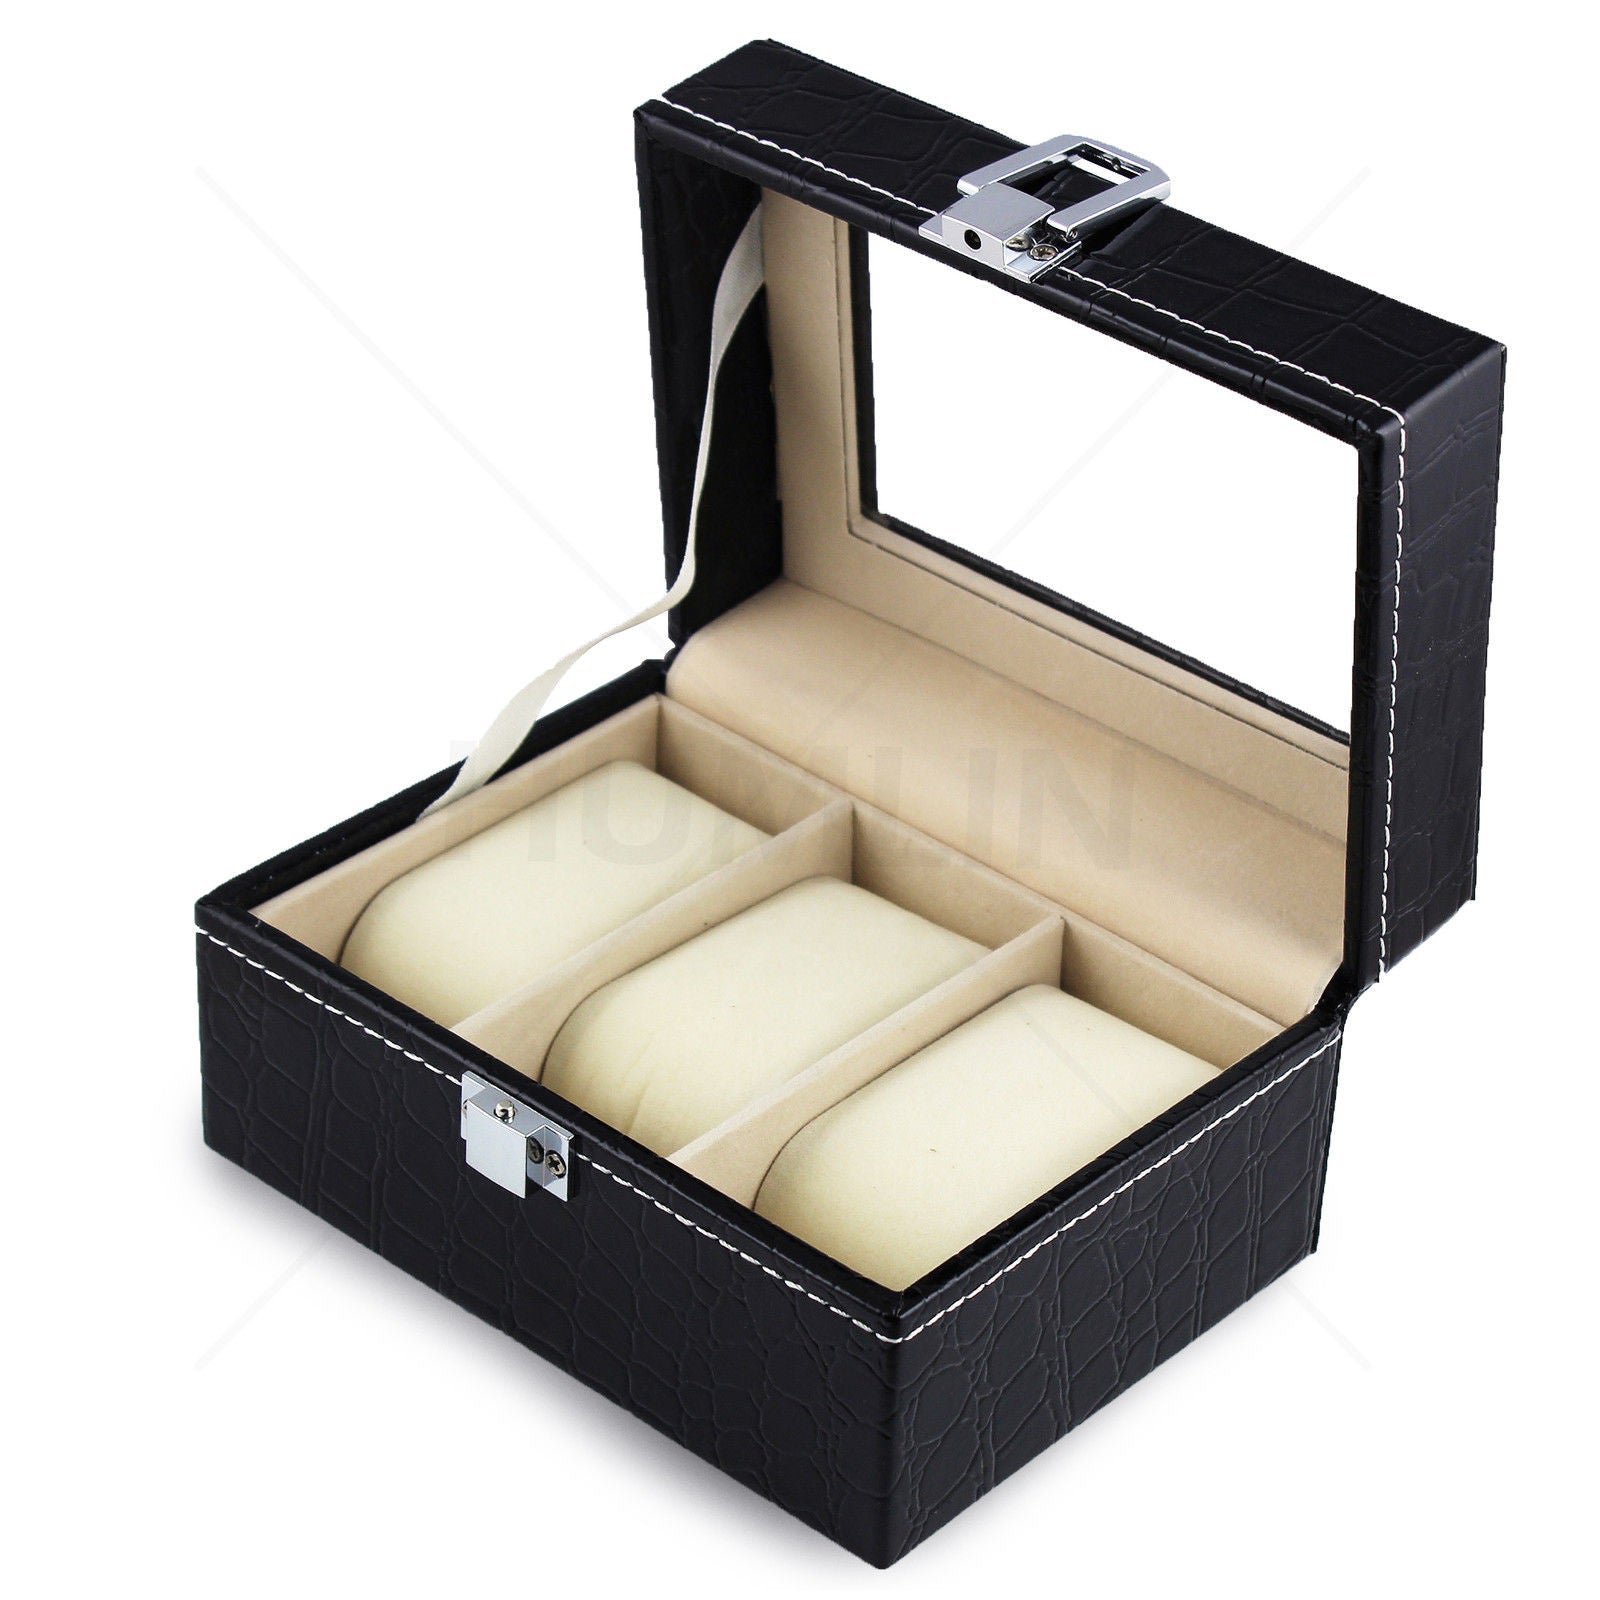 Deluxe Crocodile Leather Watch Display Case